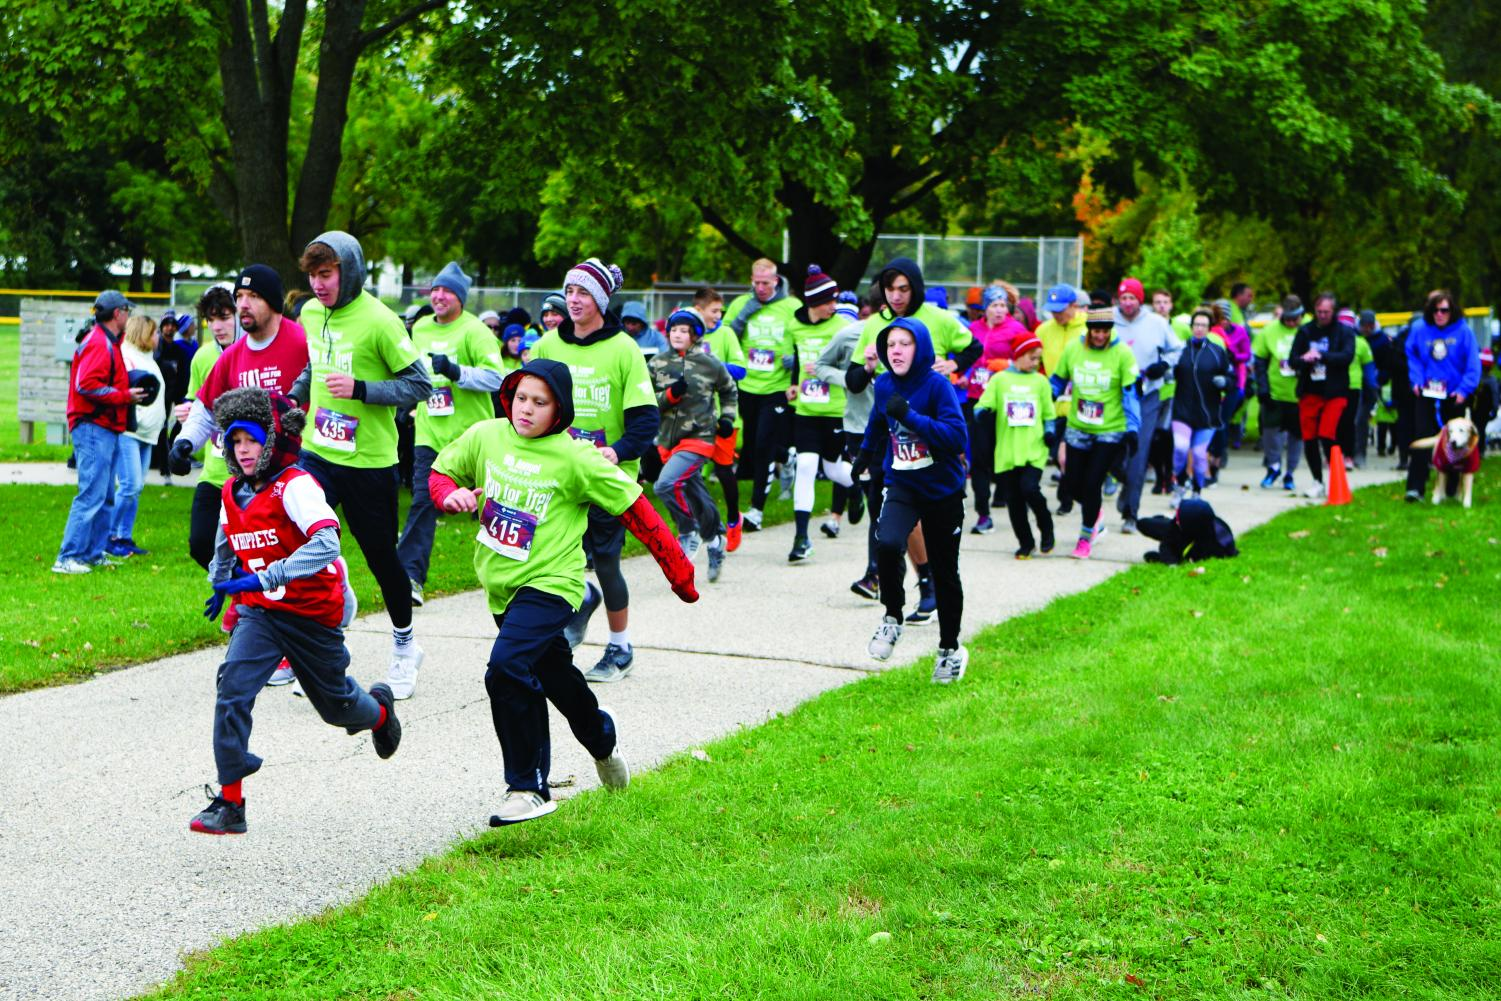 Members of the Whitewater community take part in the Run for Trey event.